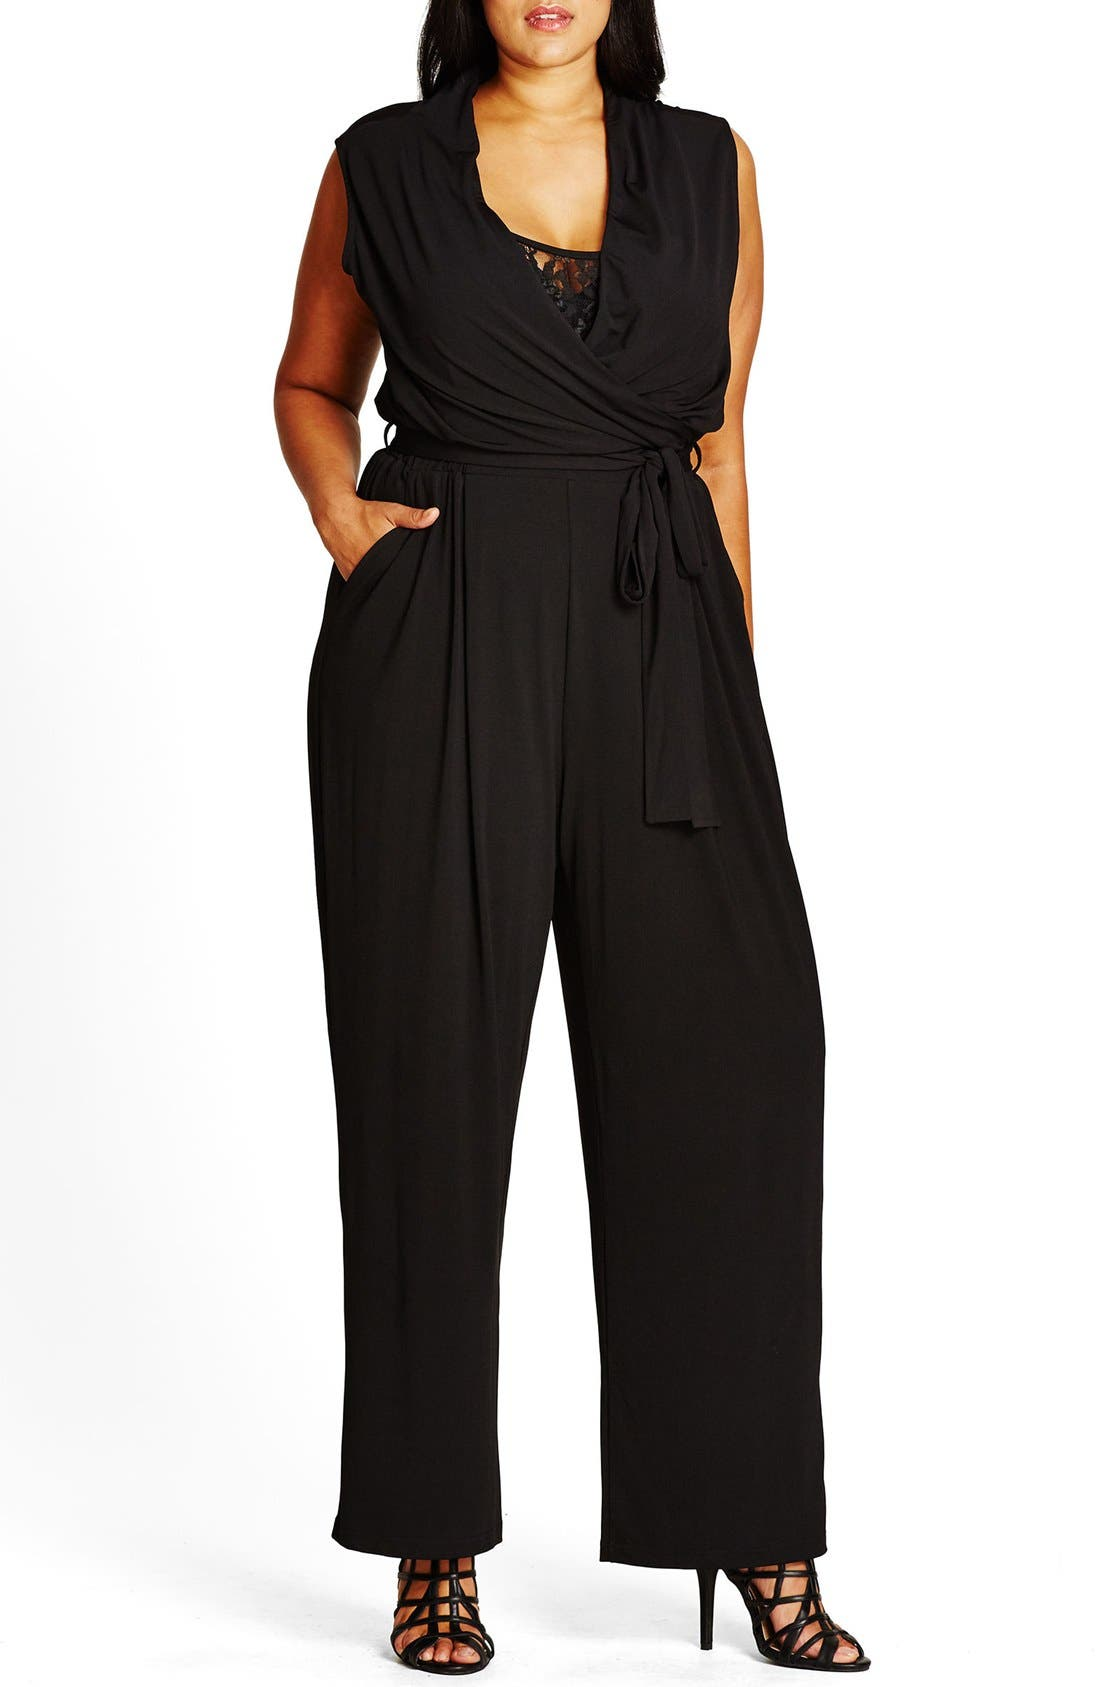 CITY CHIC Samurai Lace Inset Surplice Jersey Jumpsuit